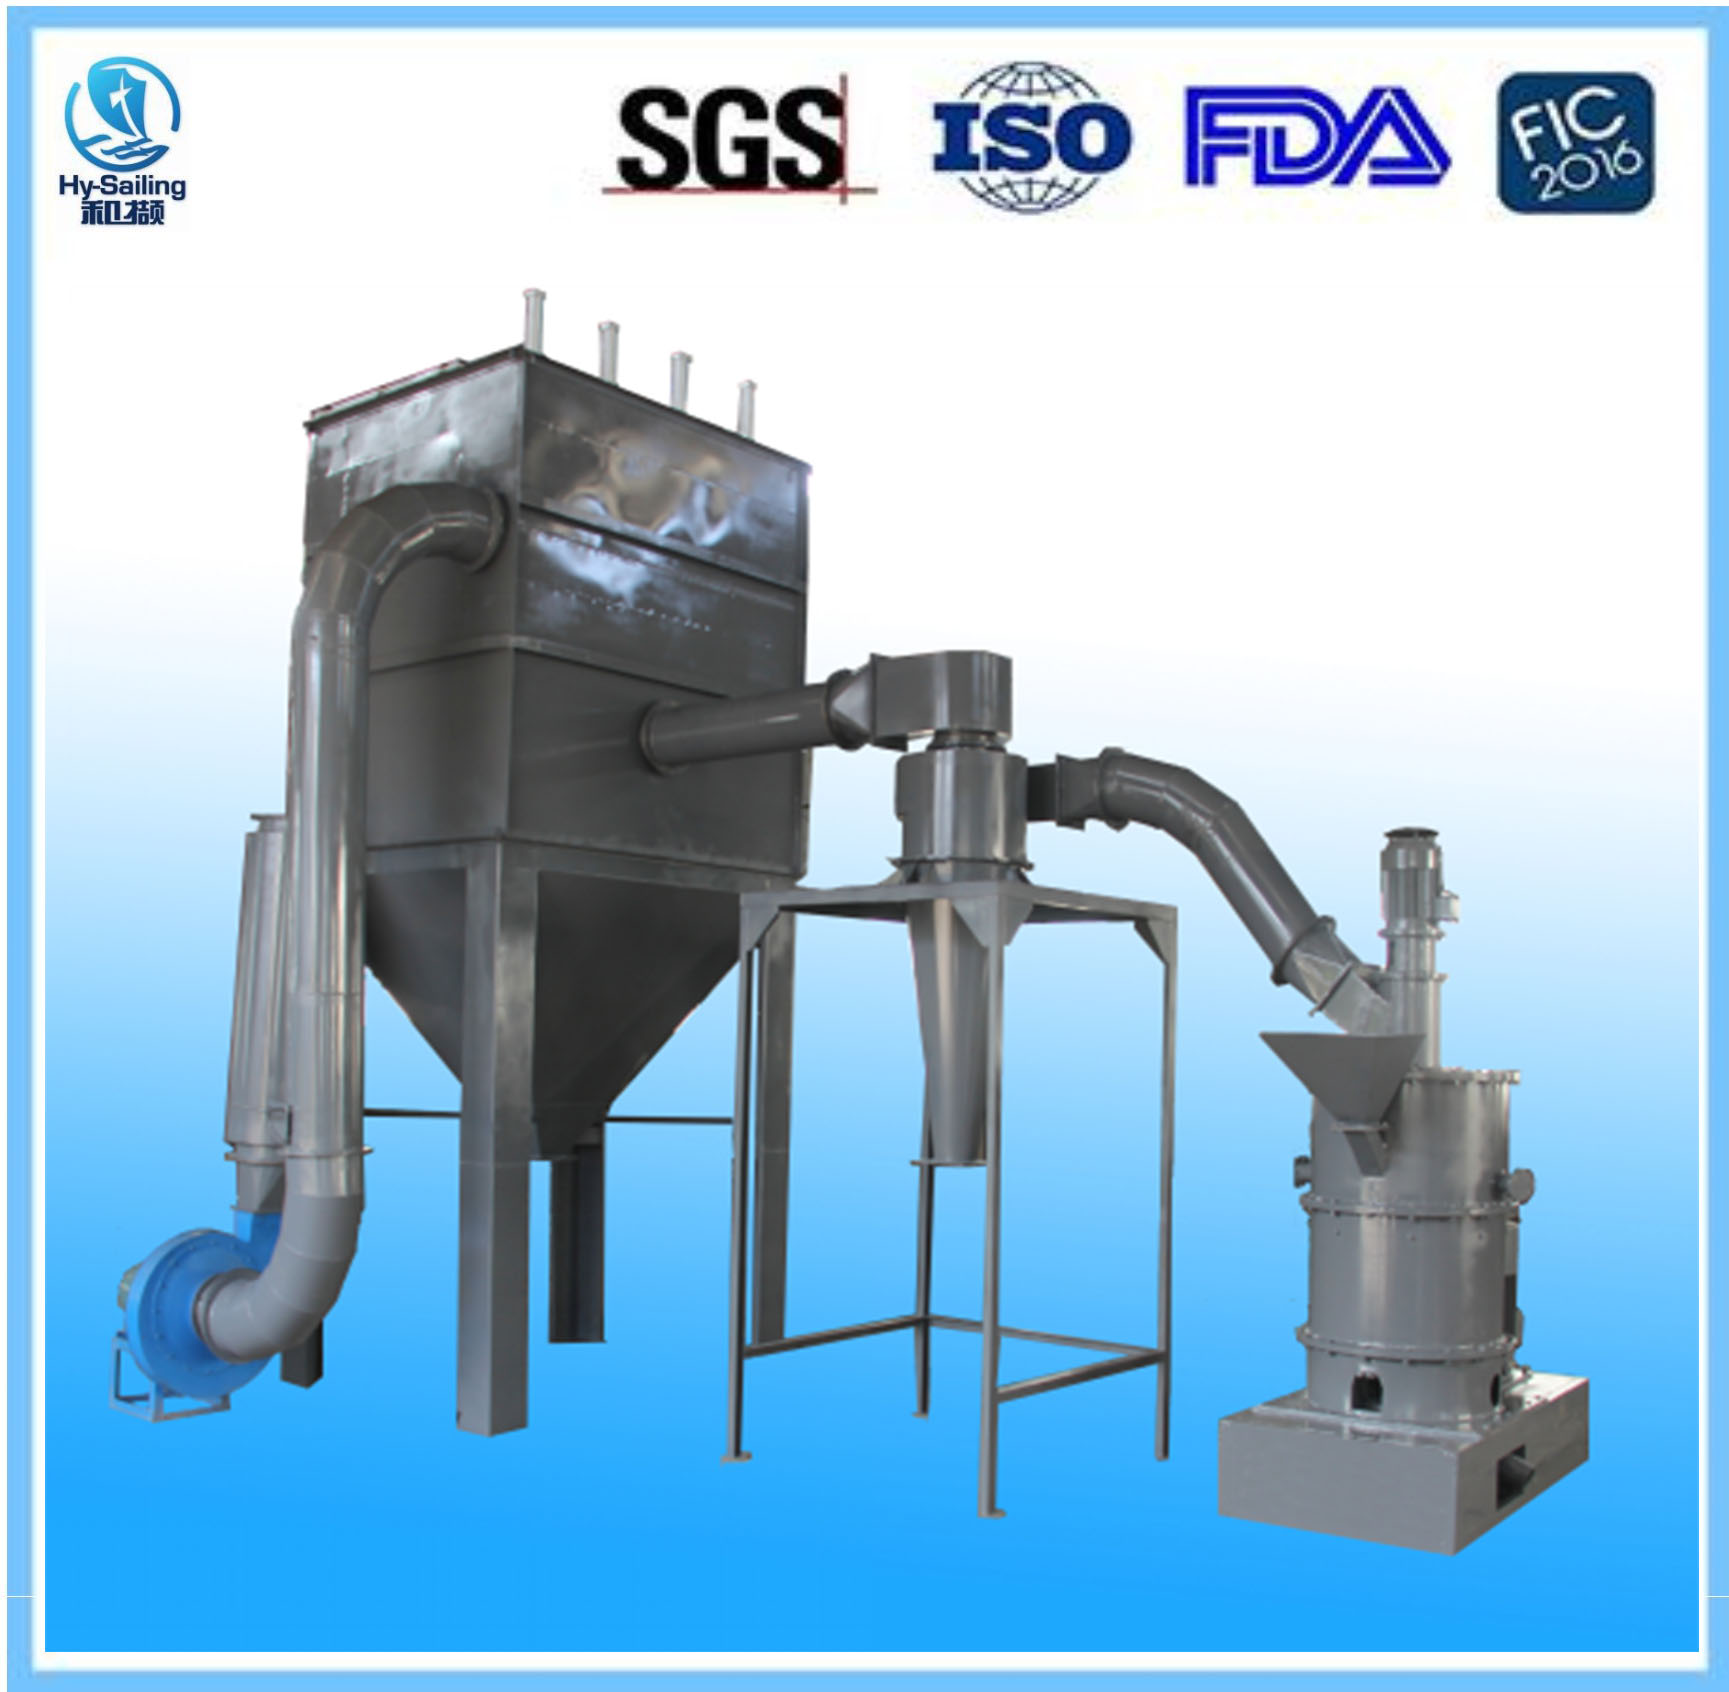 Narrow Particle size High purity H type Impact grinding machine Special for Ash Calcium Powder